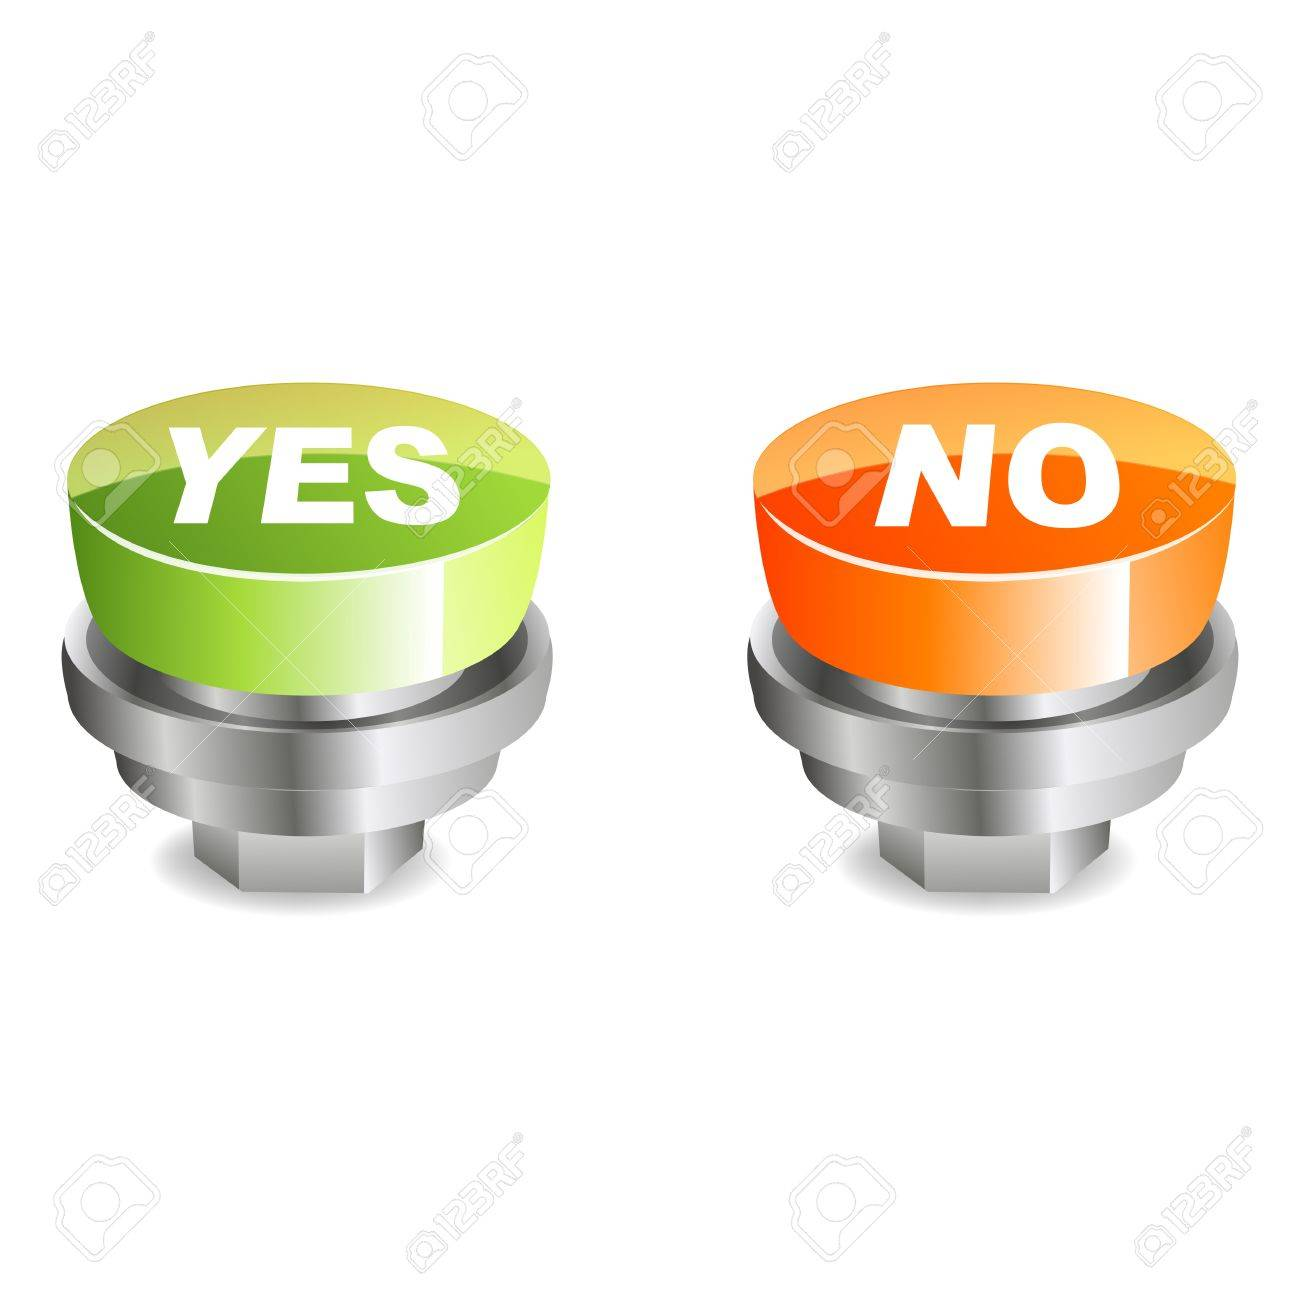 illustration of yes and no buttons on white background Stock Vector - 8441888